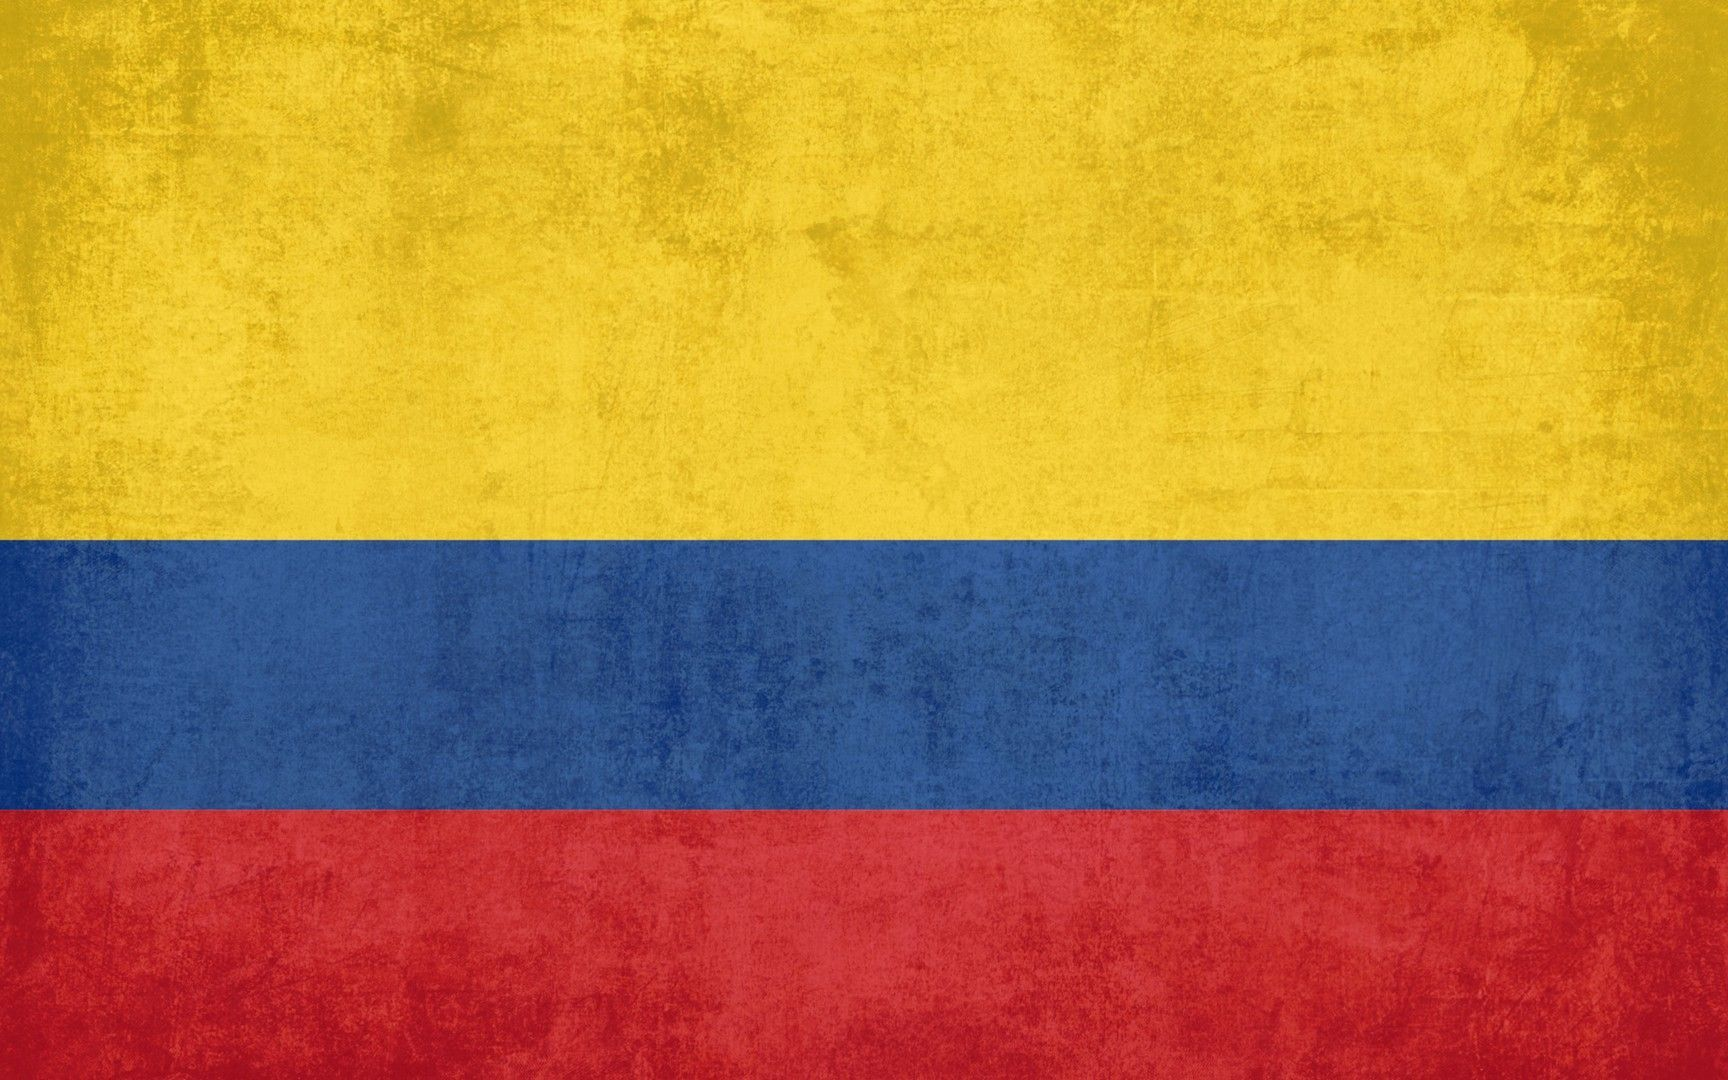 1728x1080 Flag of Colombia wallpaper   Flags wallpaper   Pinterest   Colombia ...